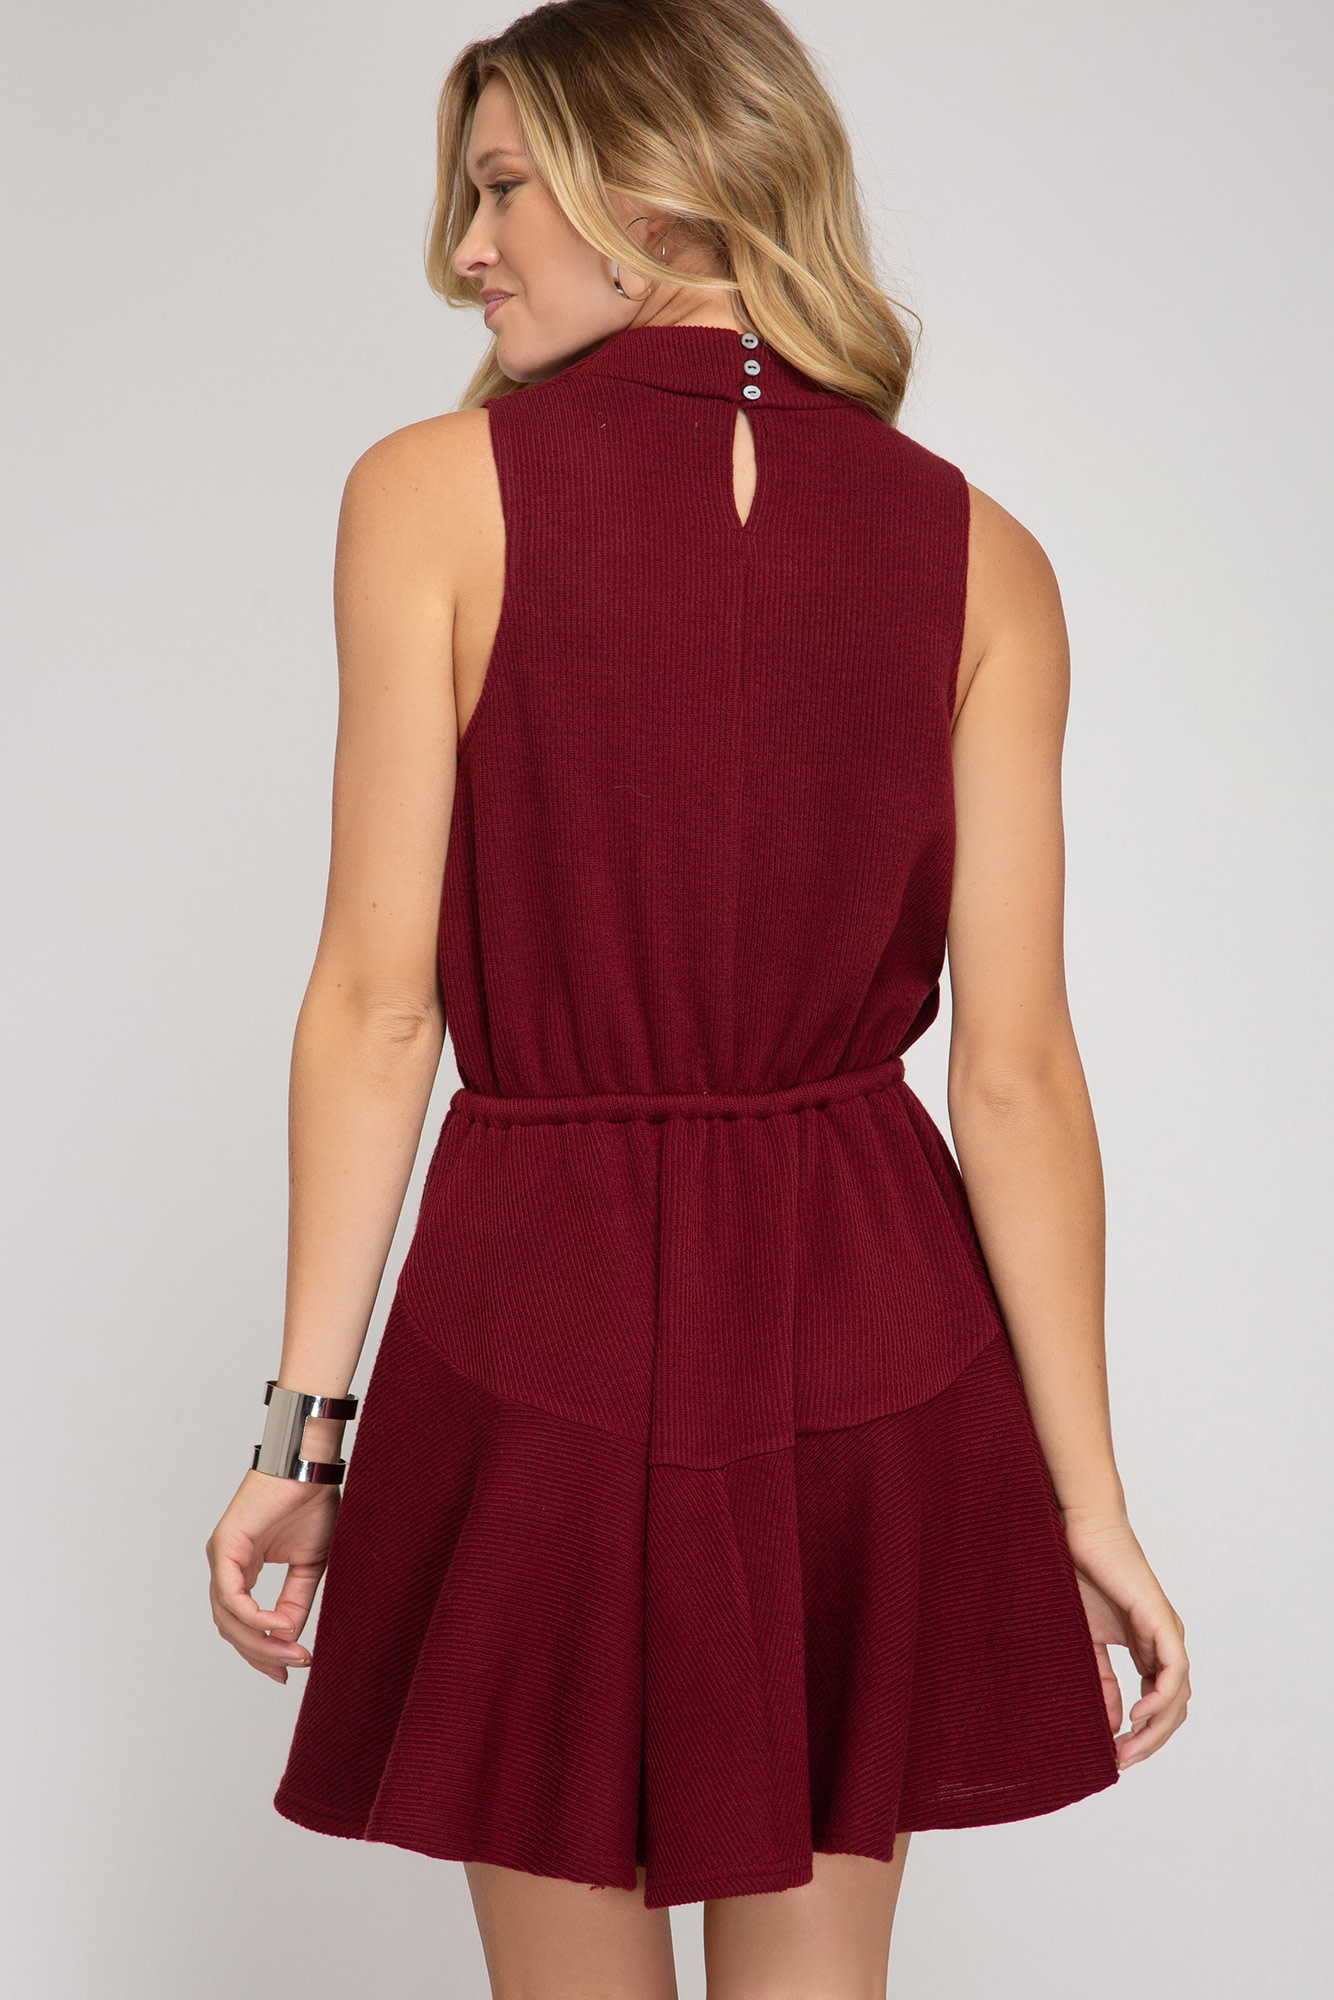 She + Sky Rib Knit Cowl Neck Dress